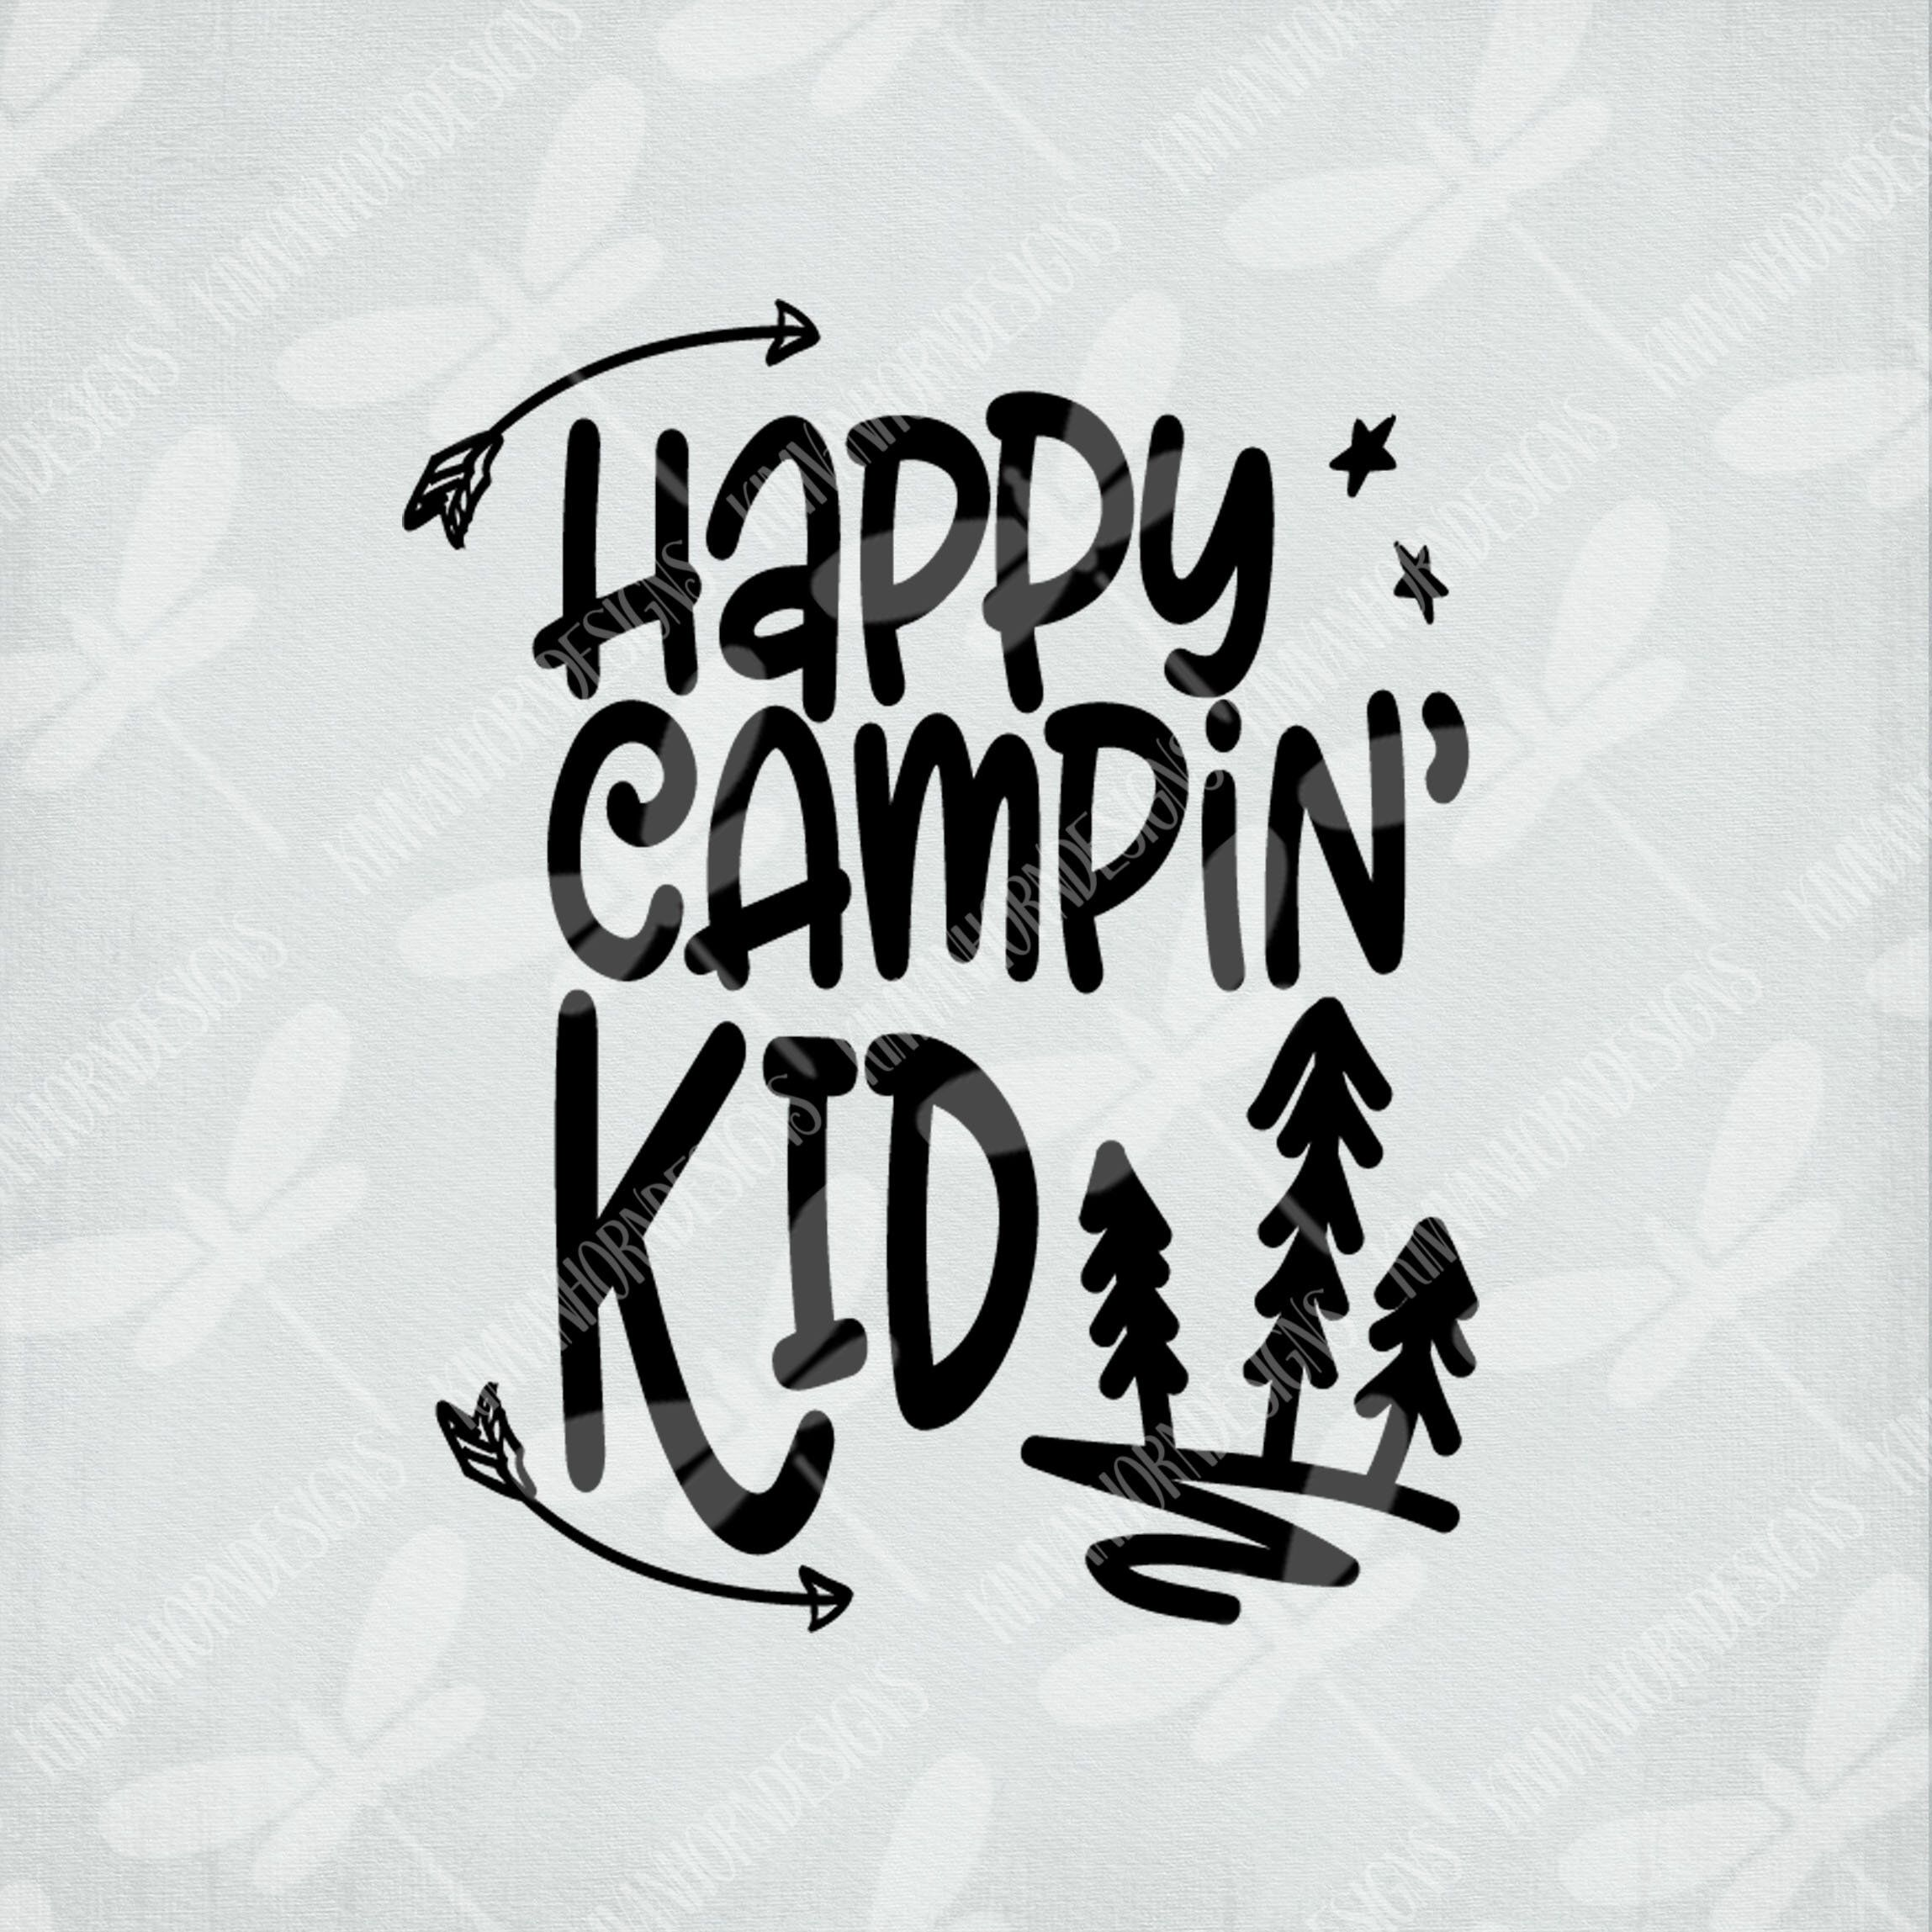 Camping SVG / Happy Campin' Kid / Cut Files For Cricut